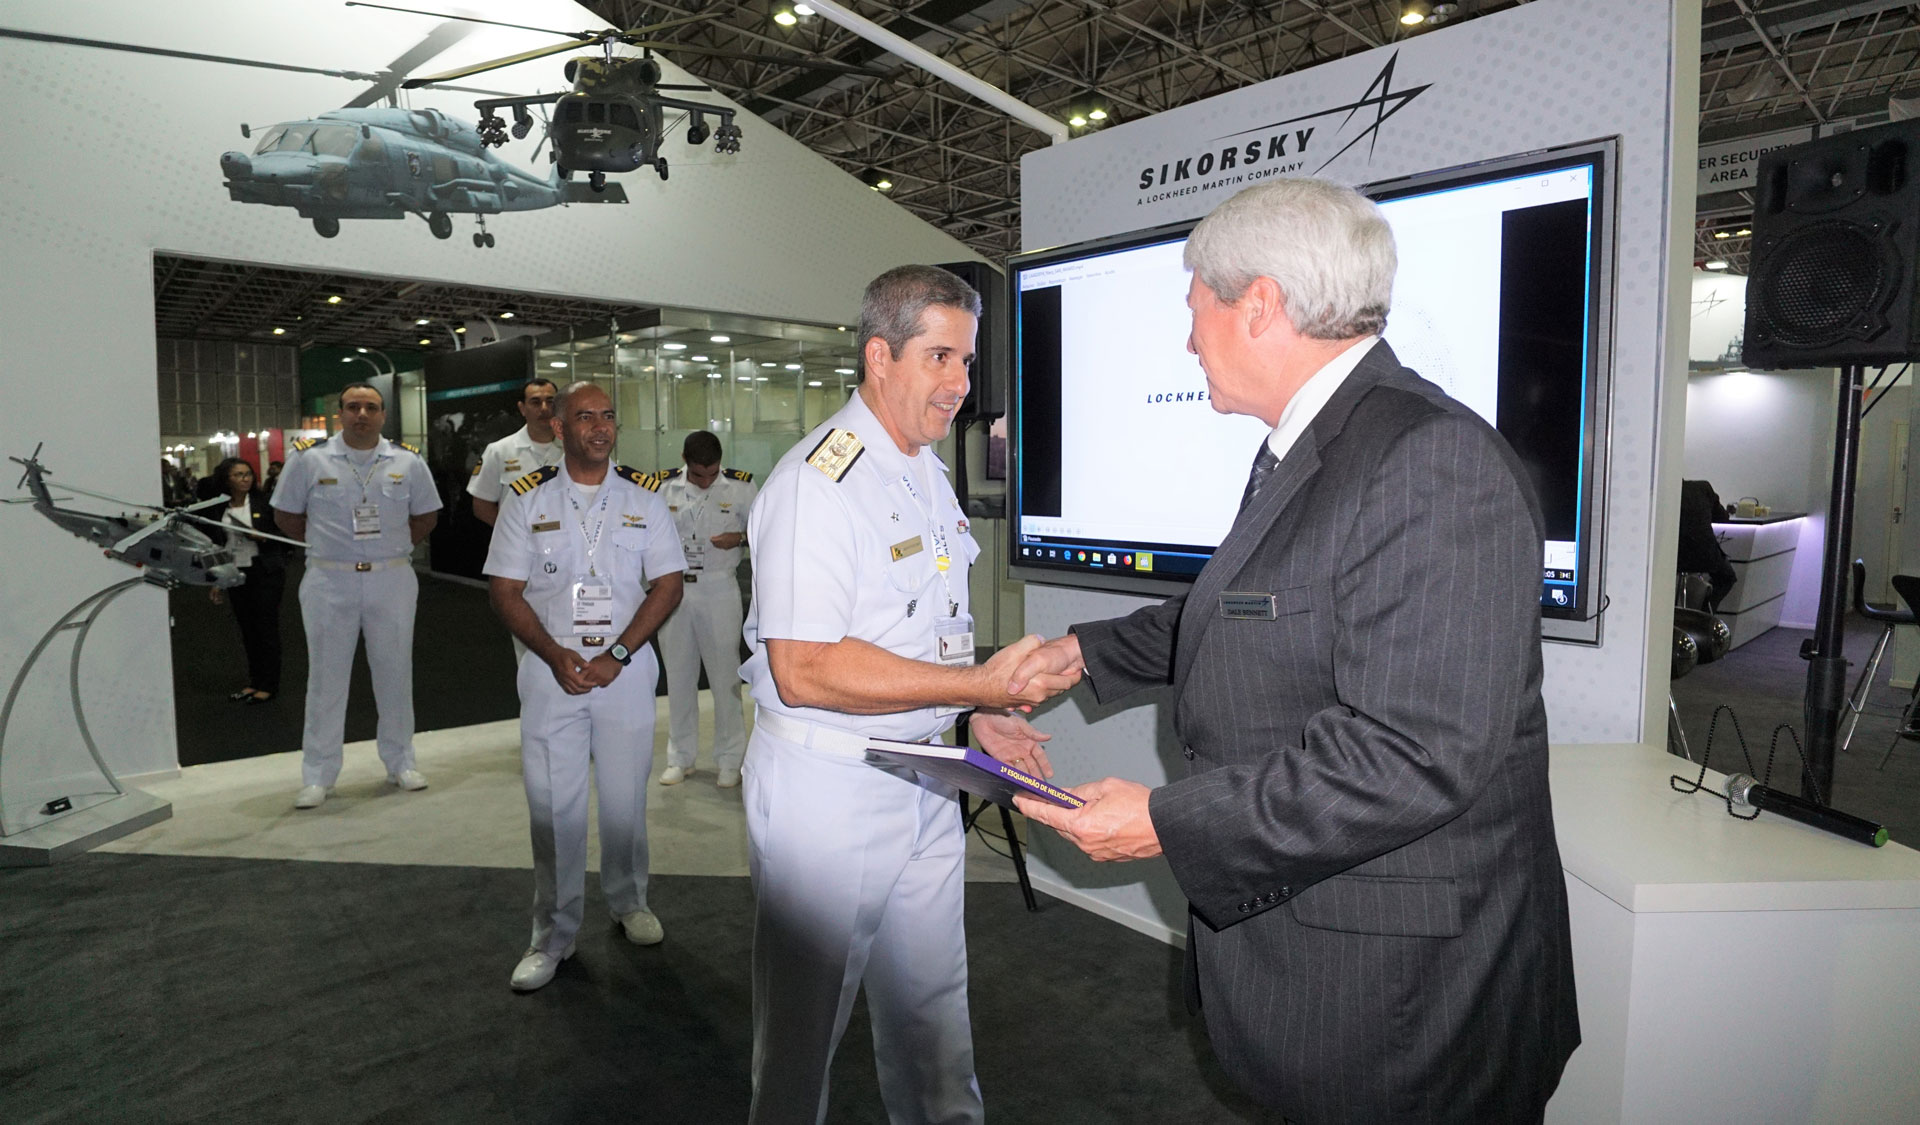 "Three squadrons from the Brazilian Air Force were recognized by Sikorsky with commemorative plaques for two different rescues that occurred in December 2018. The 2º/10º Aviation Group and 5º/8º Aviation Group conducted a three-day search and rescue for a crashed civilian aircraft – flying their Black Hawks over dense forests near Mato Grosso, Brazil. The squadrons found the plane's two occupants alive and ushered them to safety. Two weeks later, the 7º/8º Aviation Group rescued three people and a dog from another civilian airplane crash near Tabatinga, Brazil. Ten. Brig. Egito, commander of COMPREP, who received the Brazil Air Force plaques, remarked: ""Our crewmembers are ready for rescue missions 24/7. The training is important, but so is the aircraft. So the combination of men and machine is what make these rescues successful. I appreciate the recognition, and I guarantee this aircraft is part of our history and mission."""